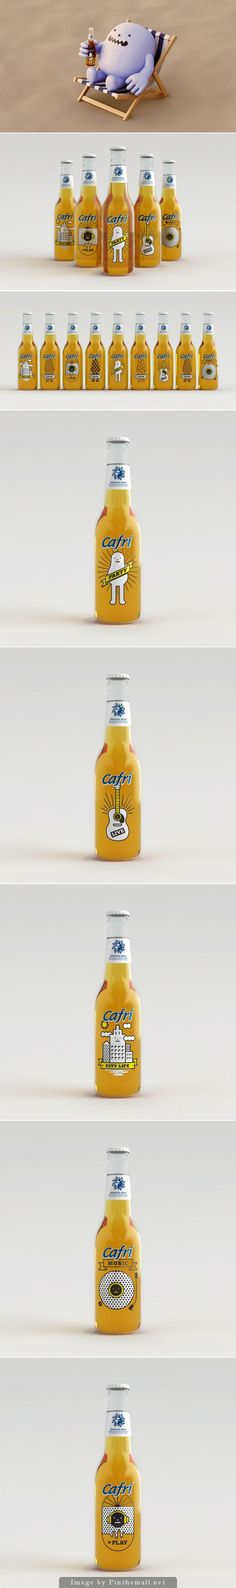 How cute is this Cafri beer packaging from Sticky Monster Lab curated by Packaging Diva PD. Food Packaging Design, Beverage Packaging, Bottle Packaging, Brand Packaging, Branding Design, Sticky Monster, Bottle Design, Hipster, Craft Beer